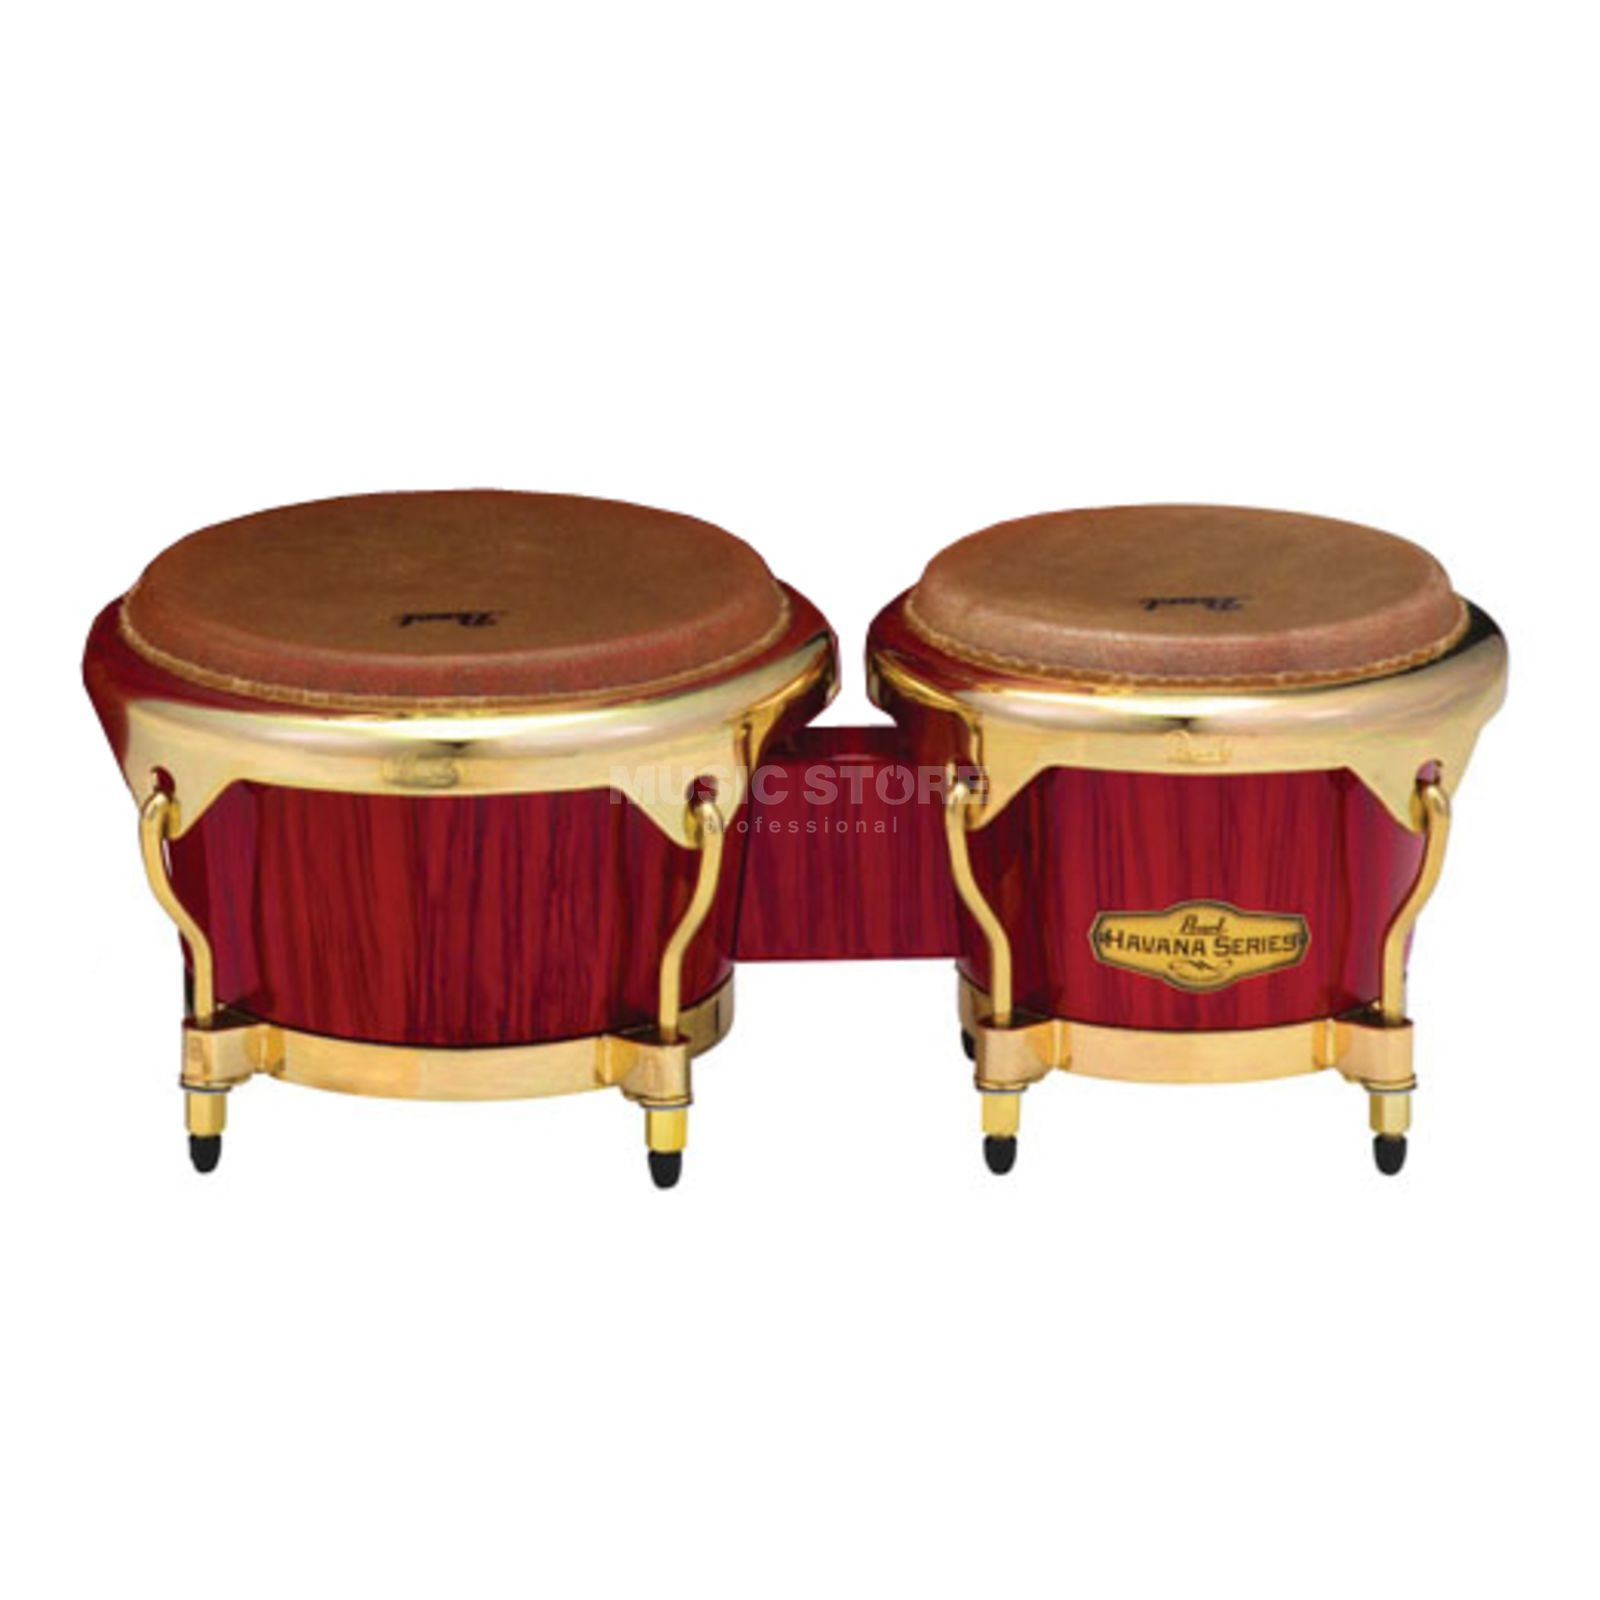 "Pearl Big Belly Havana Bongos 7""+9"", Red Tiger Stripe Product Image"